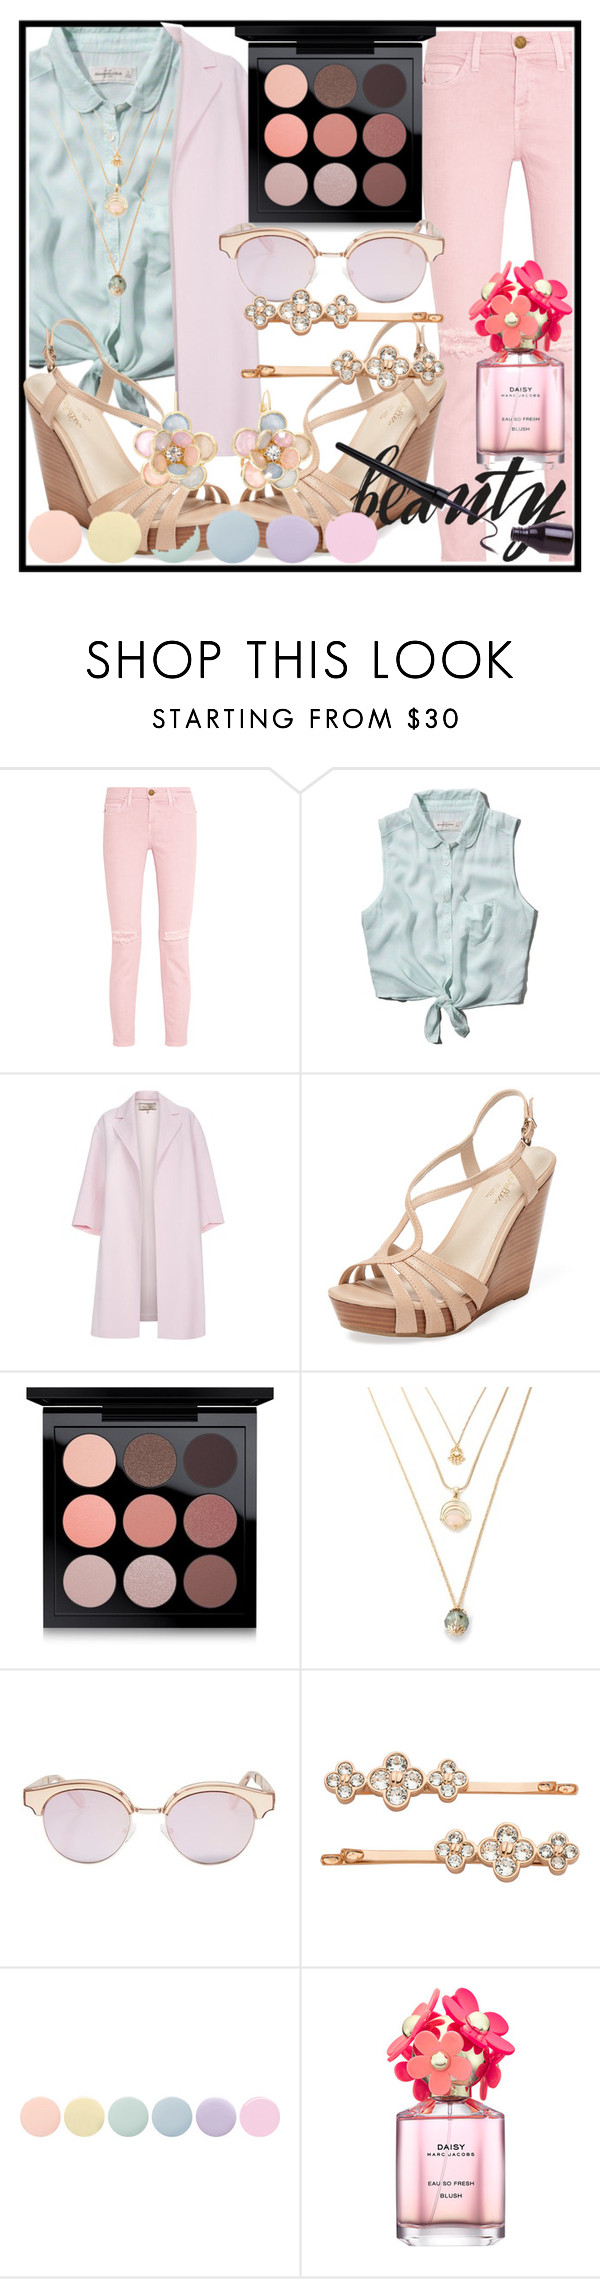 """Untitled #141"" by rckless-relentless ❤ liked on Polyvore featuring Current/Elliott, Abercrombie & Fitch, Paul Smith, Seychelles, MAC Cosmetics, Le Specs, Henri Bendel, Deborah Lippmann, Marc Jacobs and Mixit"